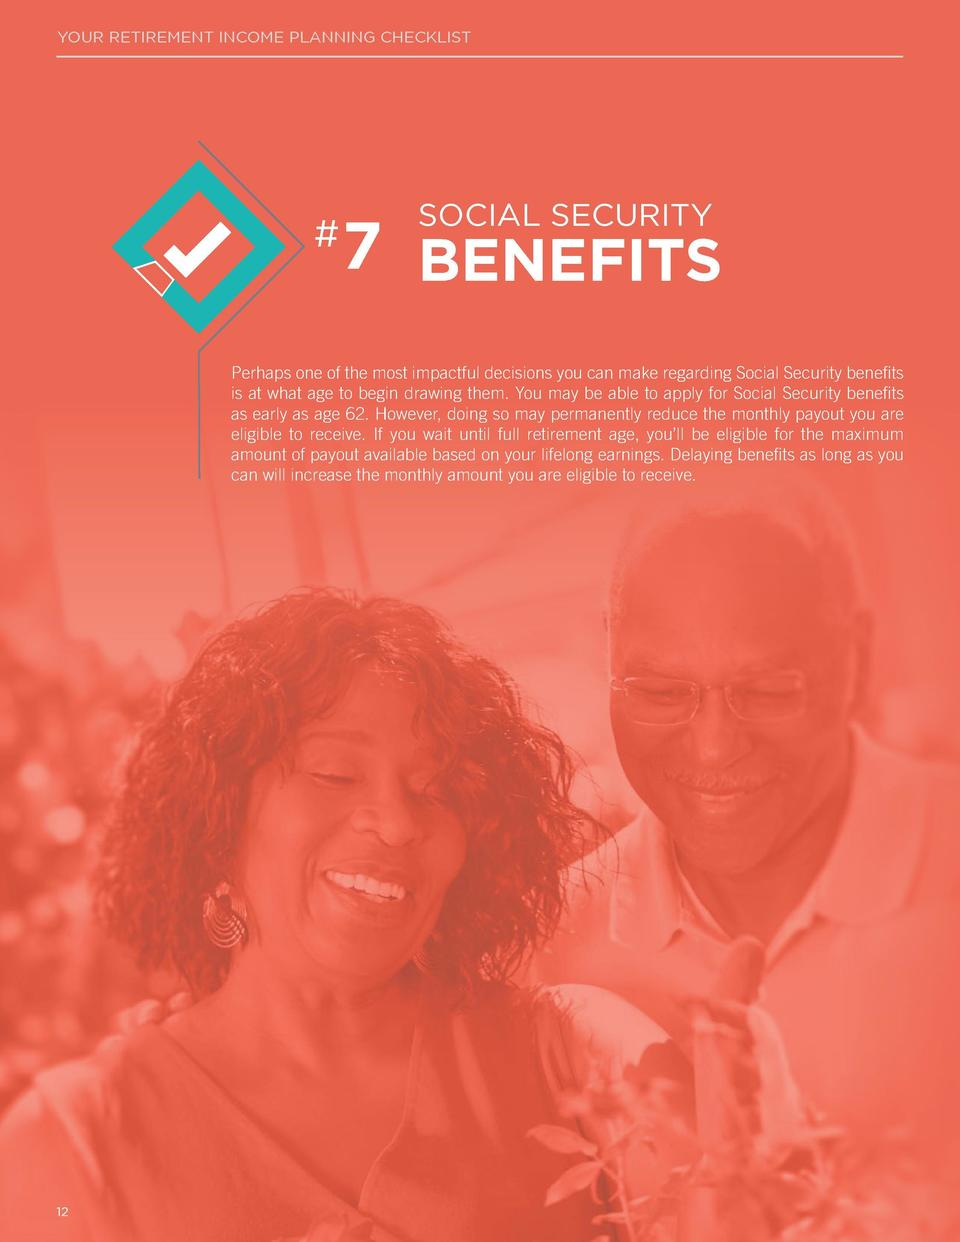 YOUR RETIREMENT INCOME PLANNING CHECKLIST     YOUR RETIREMENT INCOME PLANNING CHECKLIST  SOCIAL SECURITY  7 BENEFITS  Are ...